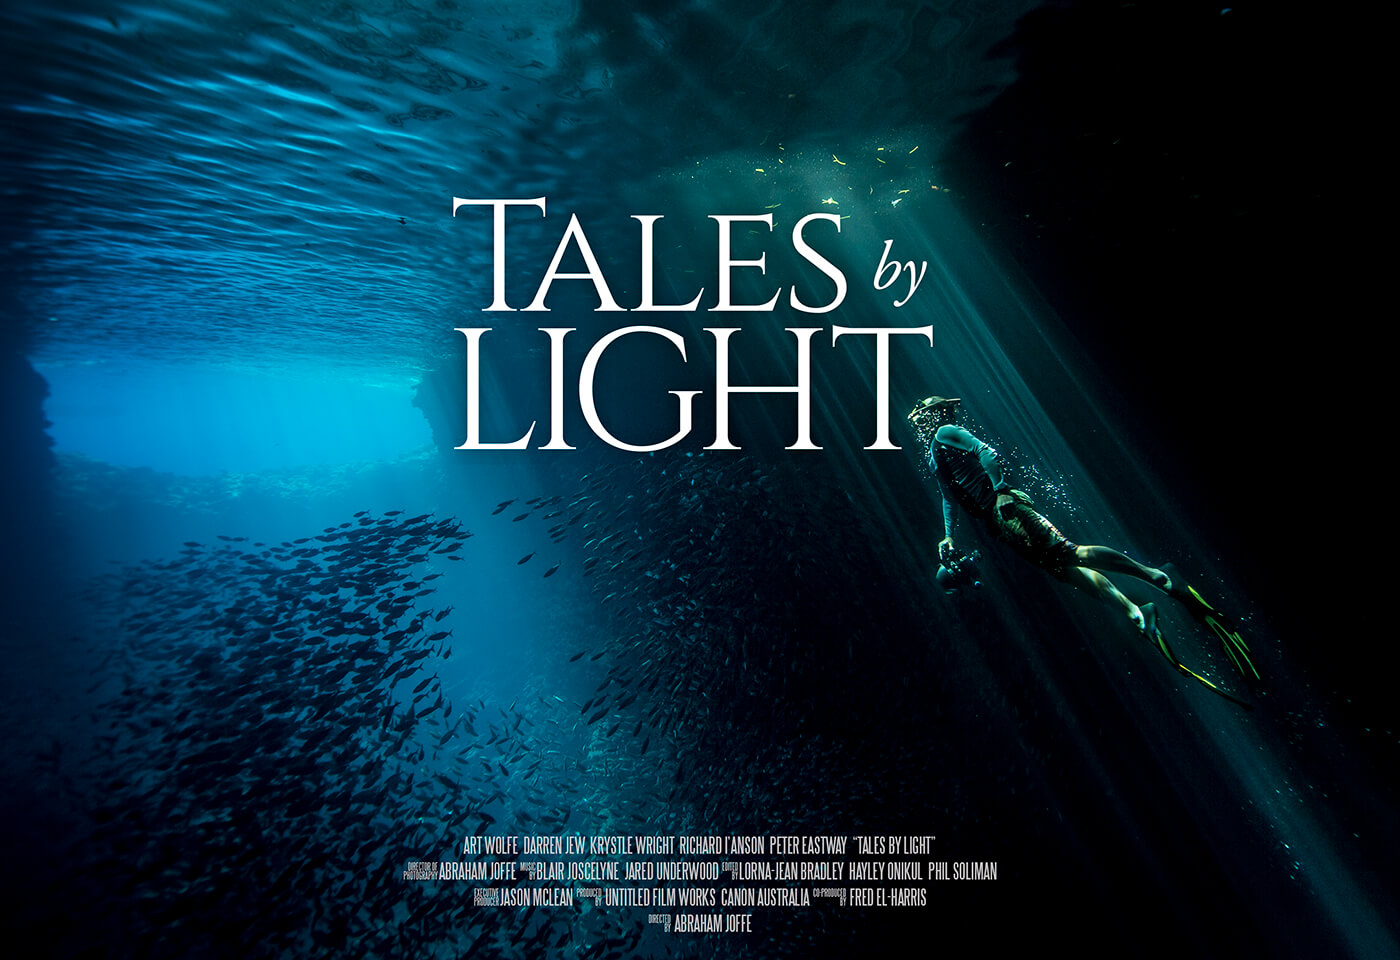 Tales by light image of scuba diver